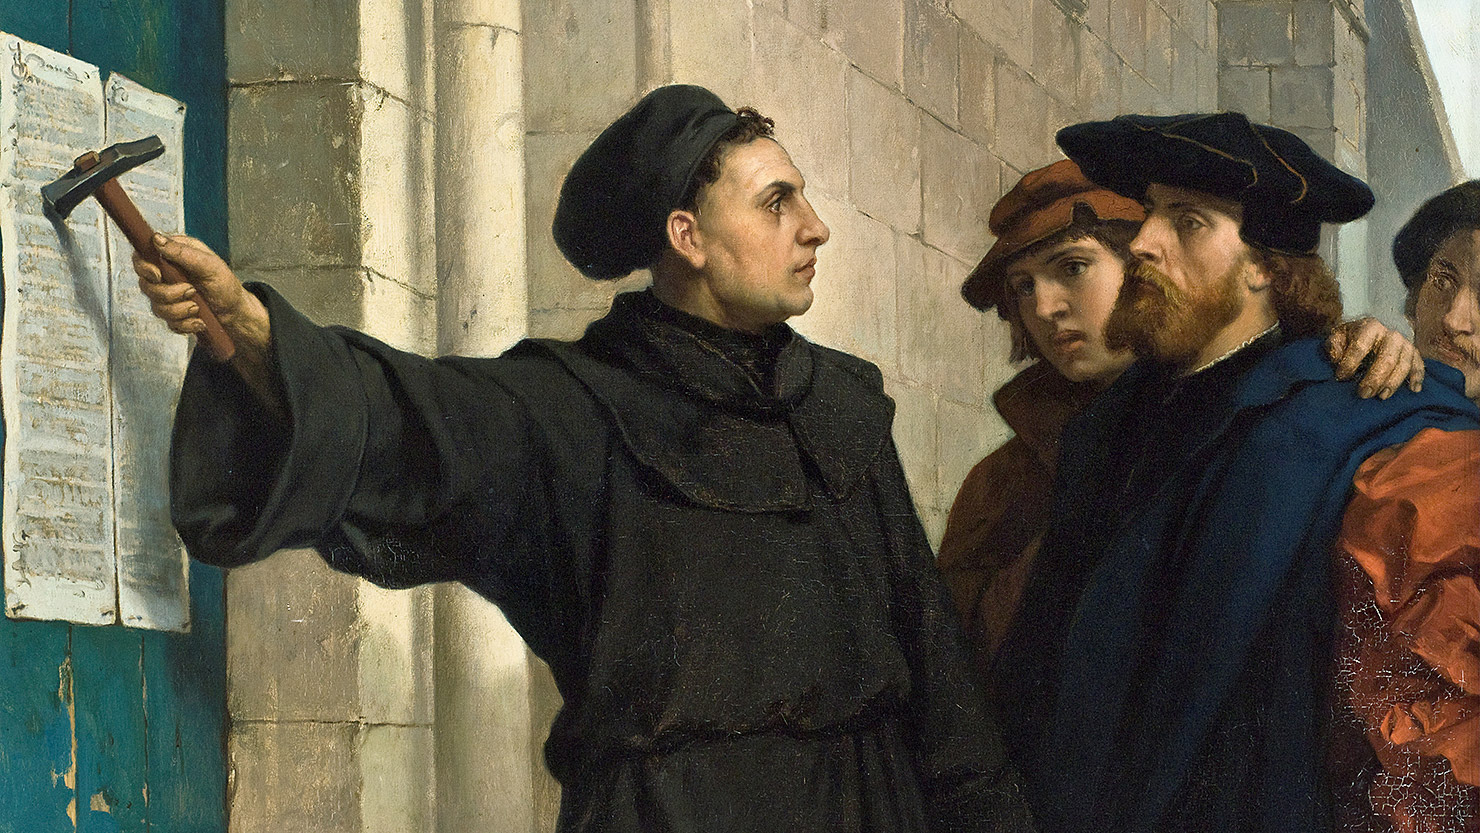 https://i0.wp.com/upload.wikimedia.org/wikipedia/commons/2/20/Luther95theses.jpg